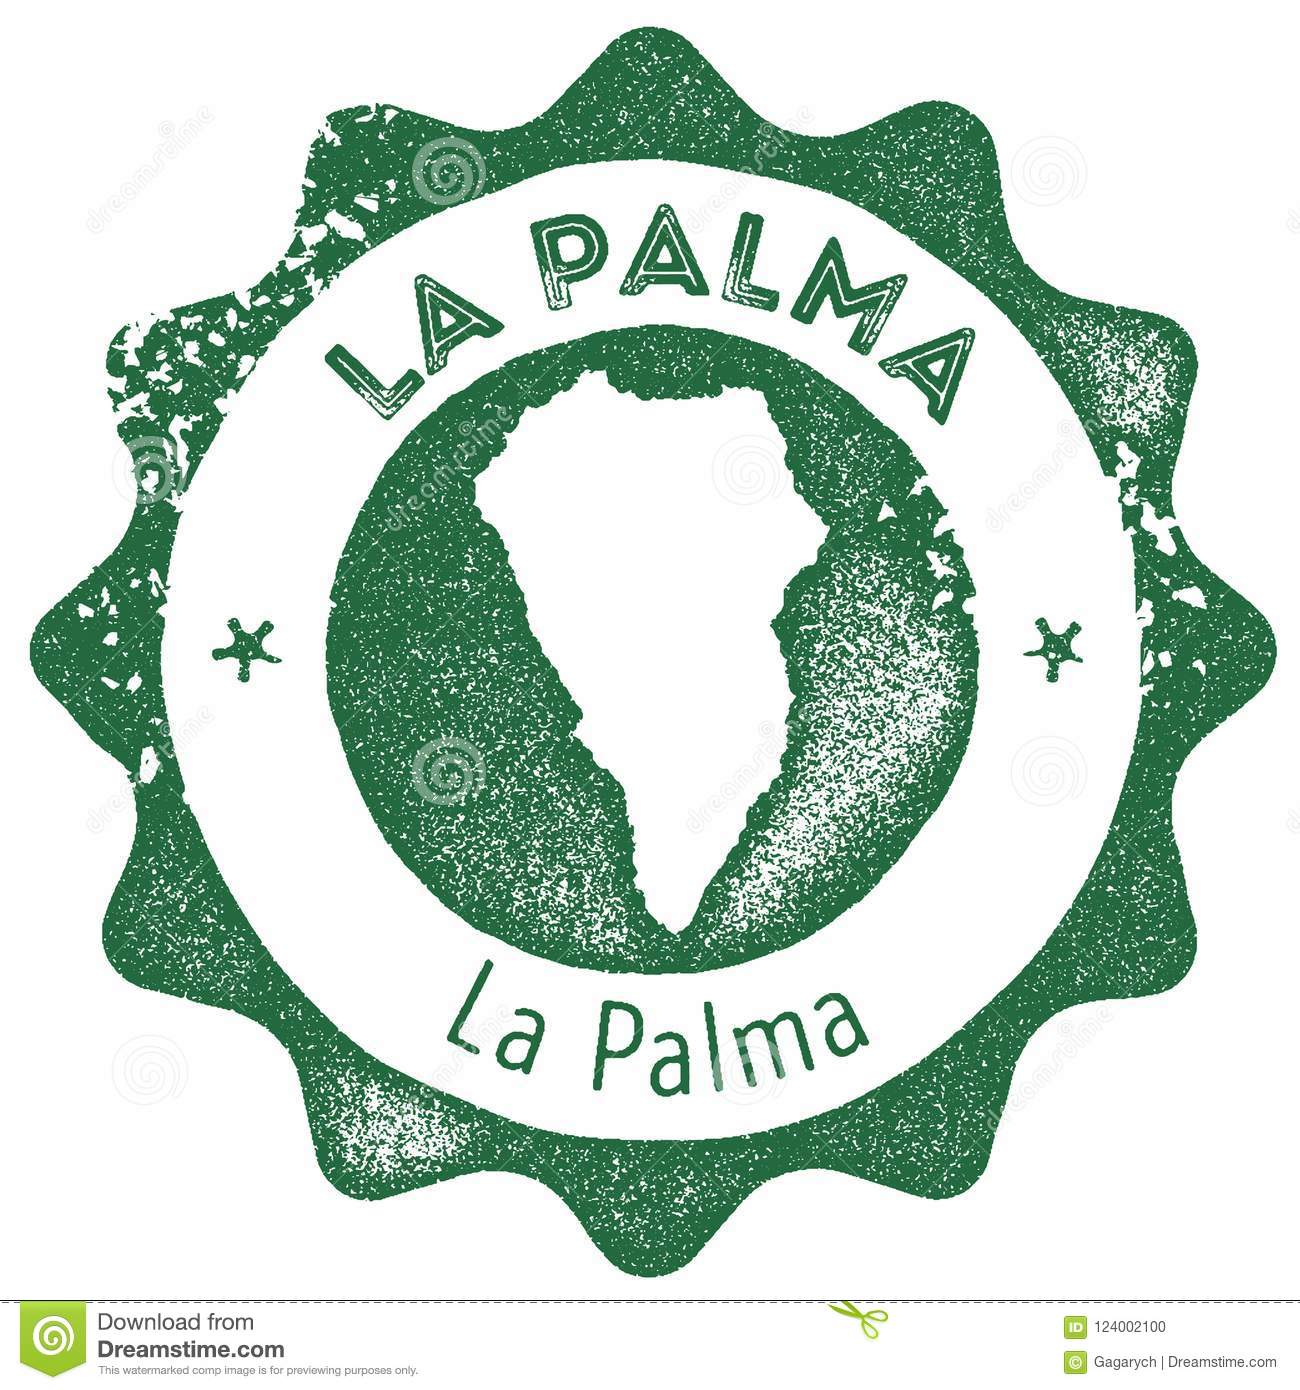 La Palma Map Vintage Stamp. Stock Vector - Illustration of product ...